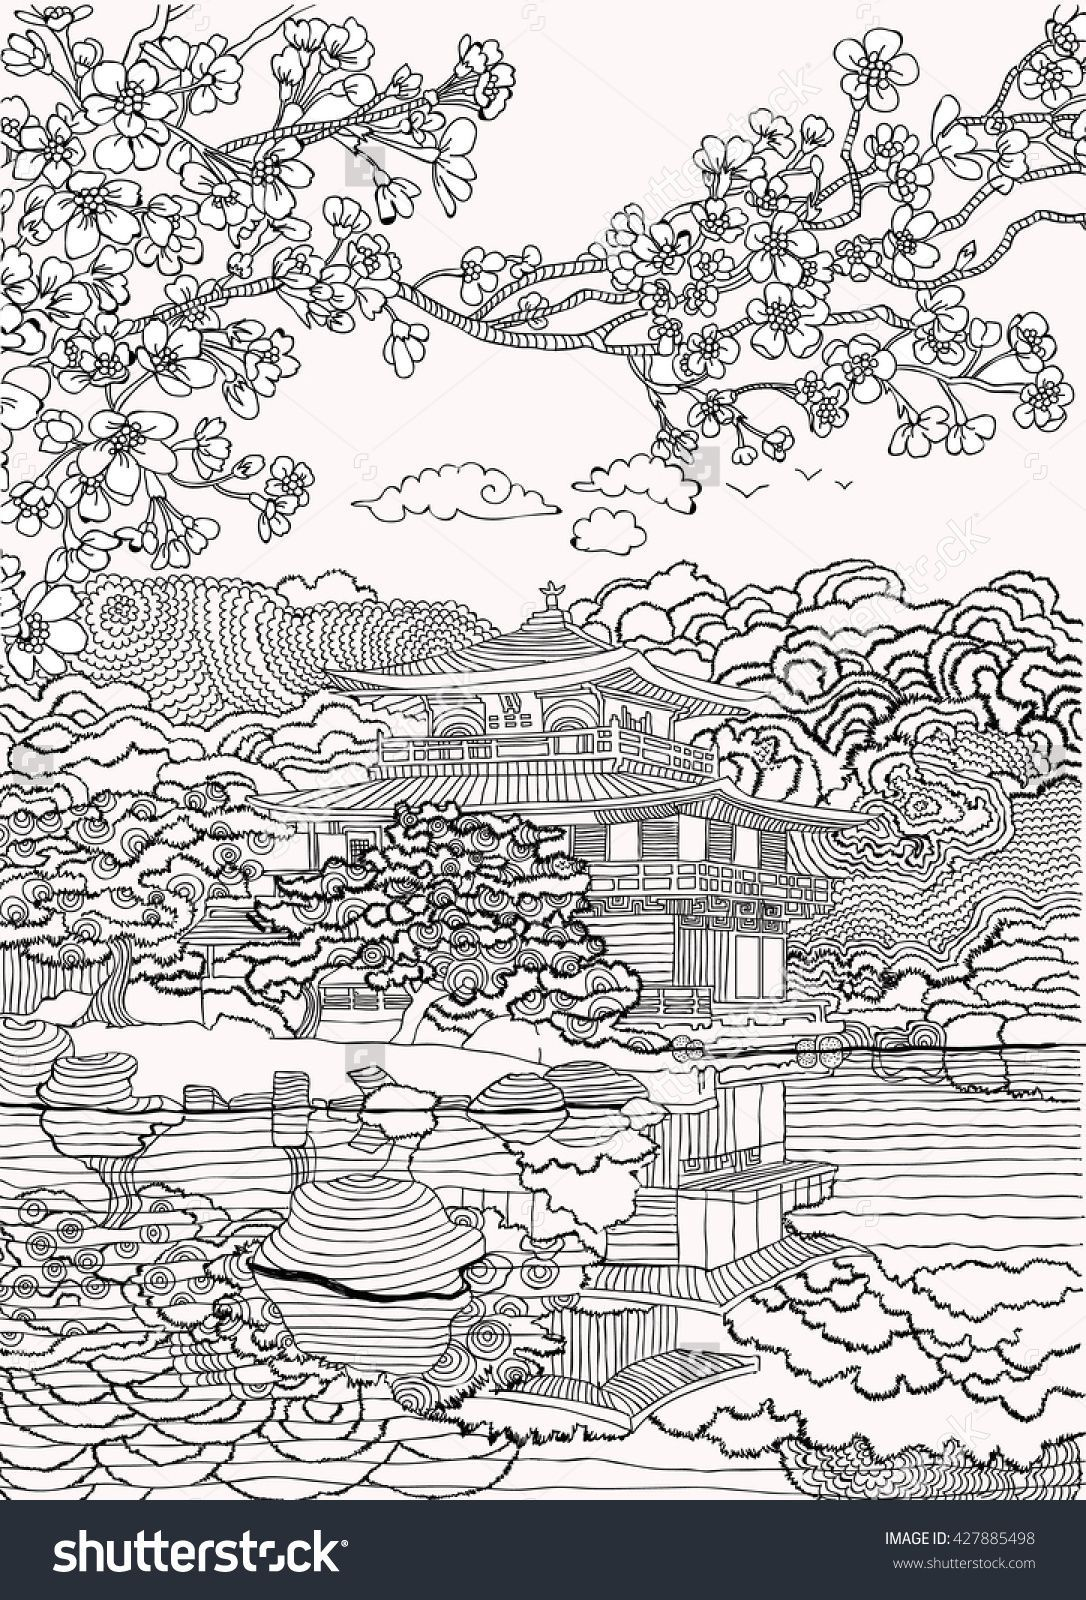 Japan Coloring Pages Shutterstock 427885498 Coloring Coloring